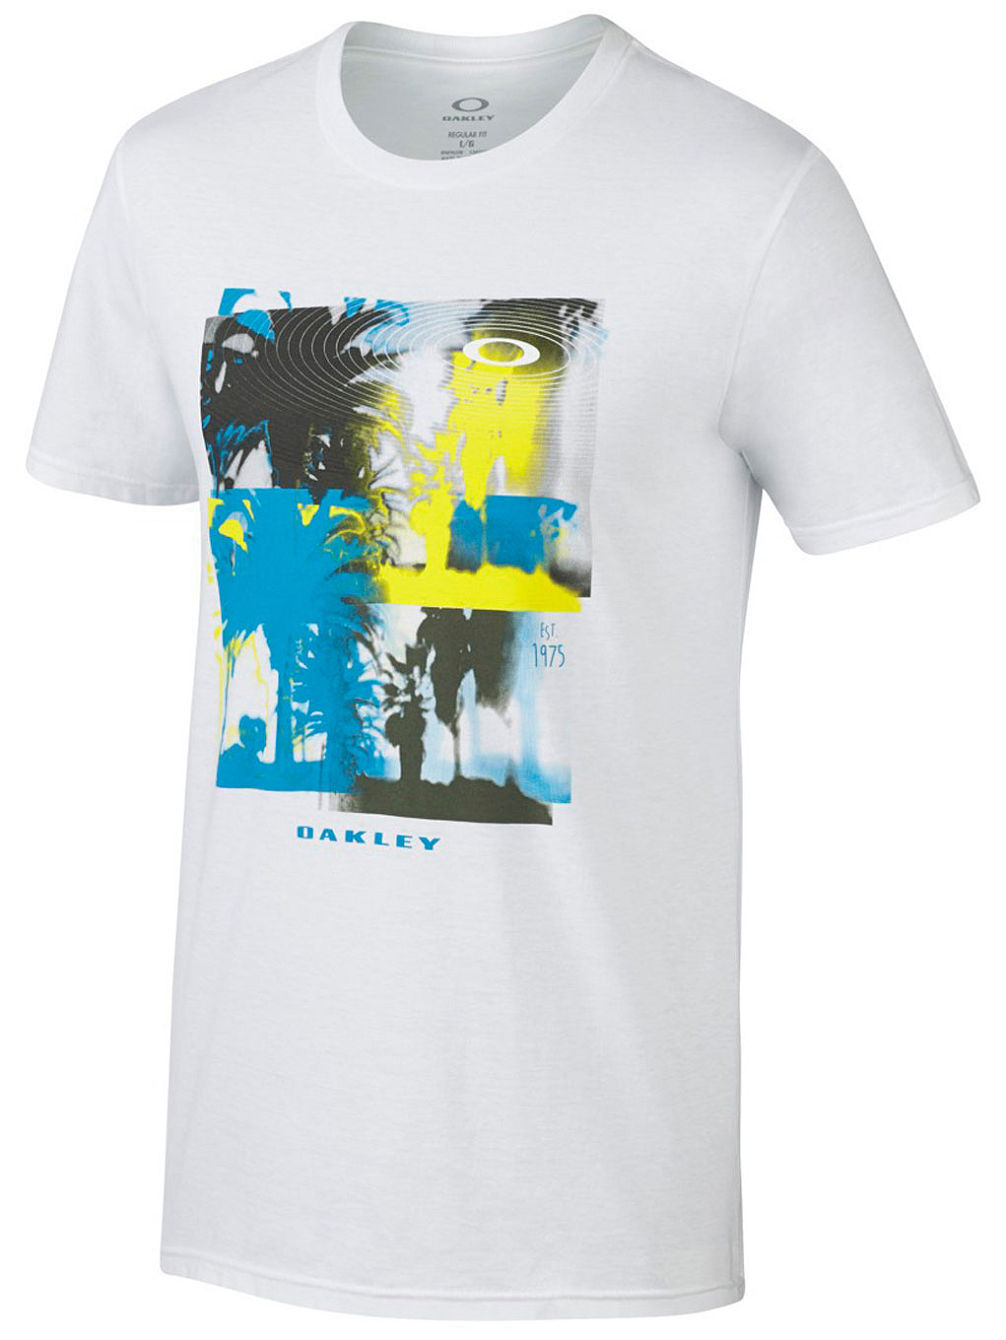 Buy oakley cruise t shirt online at blue for Start an online t shirt business at zero cost